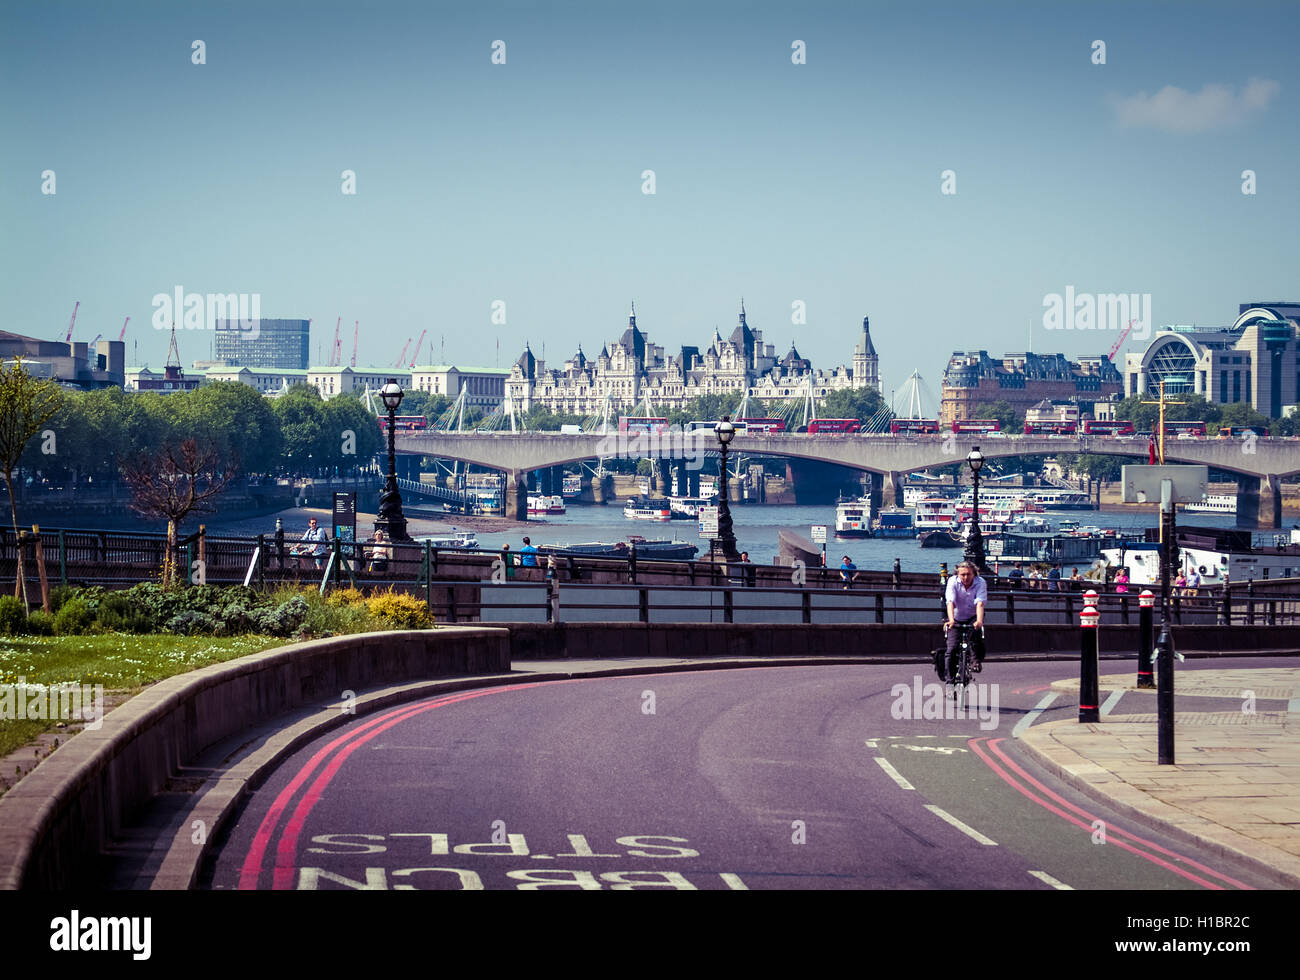 LONDON, UK – MAY 17, 2014: A view of London from the Blackfriars Station area, with the Royal Courts of Justice - Stock Image